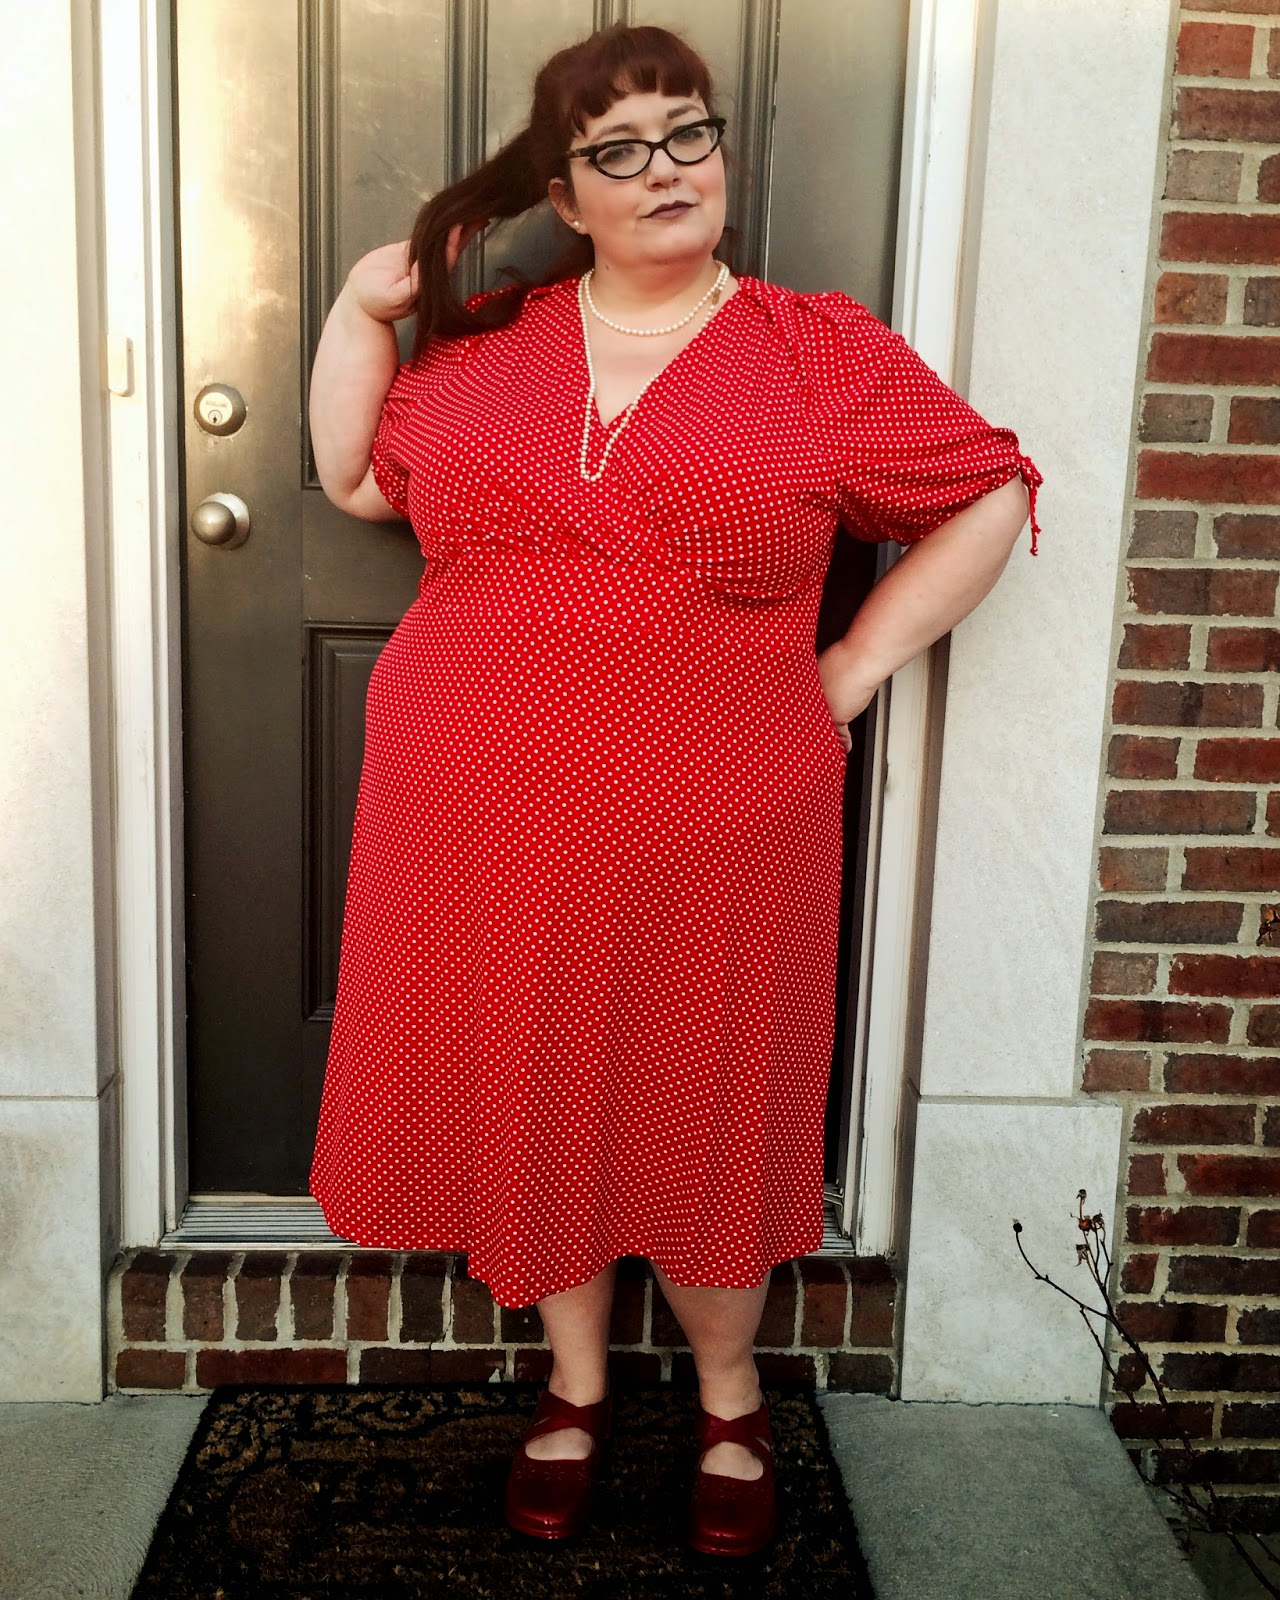 9a5cce2e74049 How to Dress Over 50 and Overweight 2019 - Plus Size Women Fashion